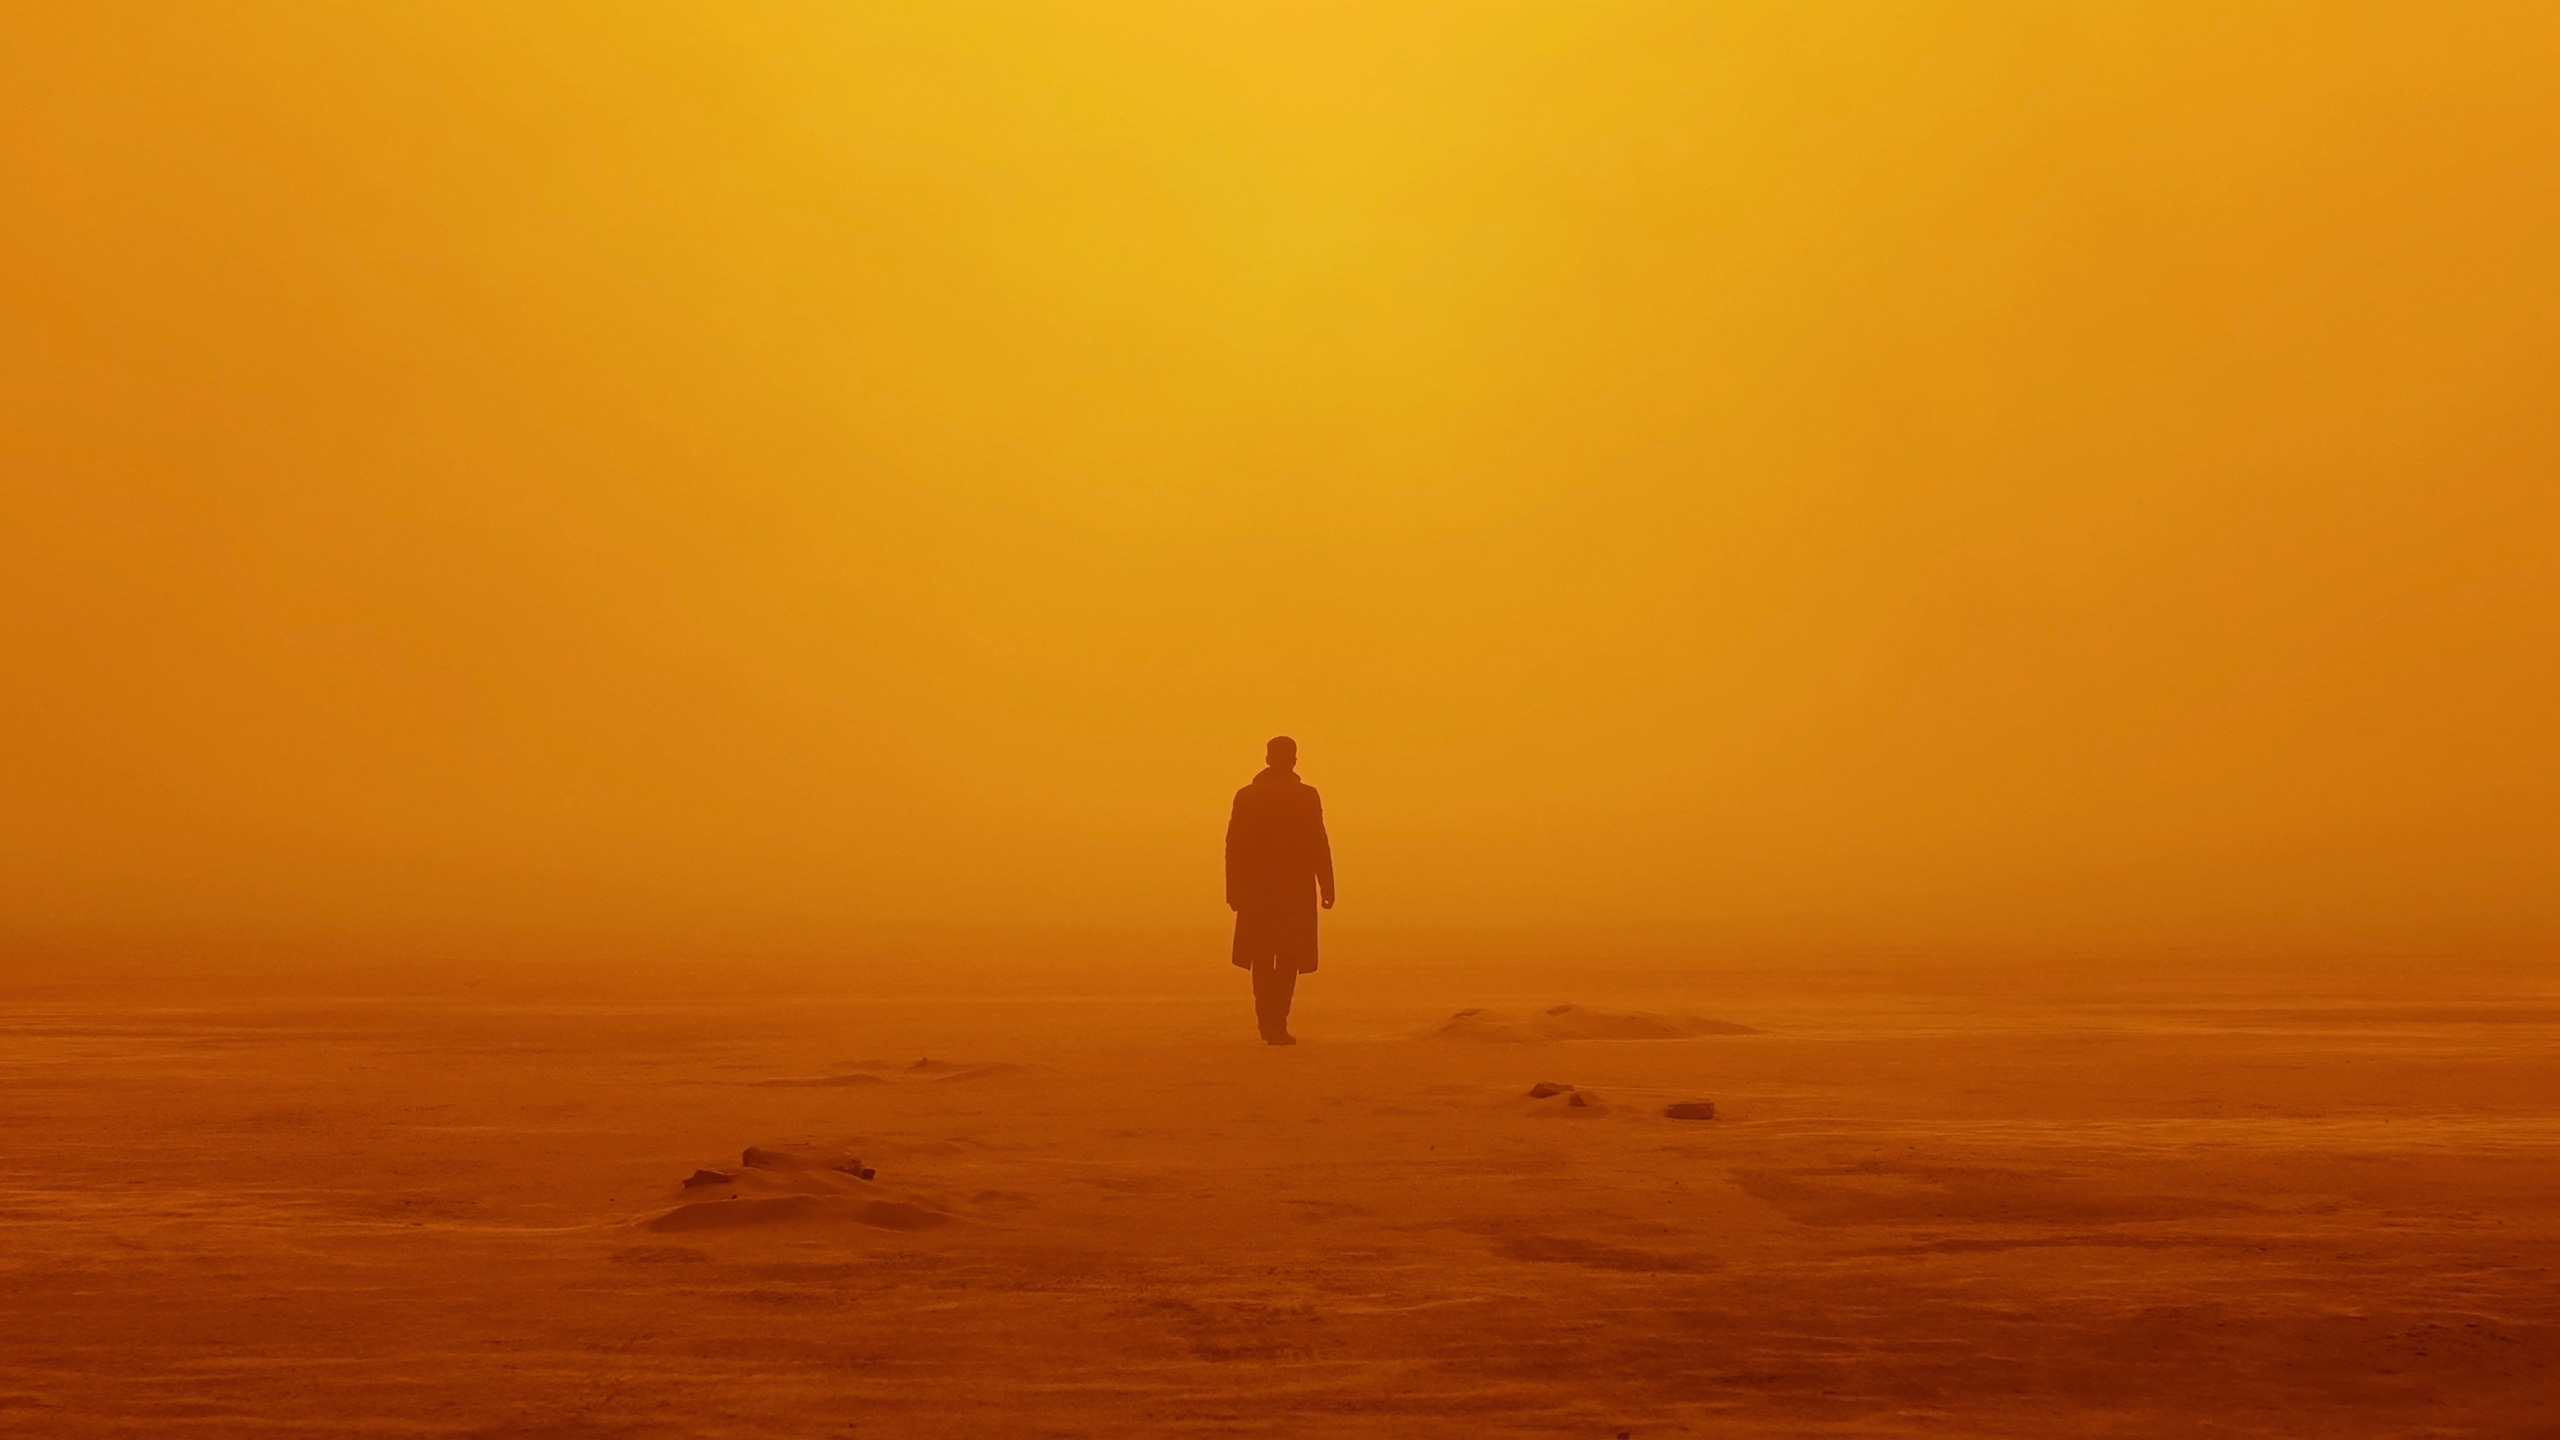 Hd Blade Runner 2049, HD Movies, 4k Wallpapers, Images